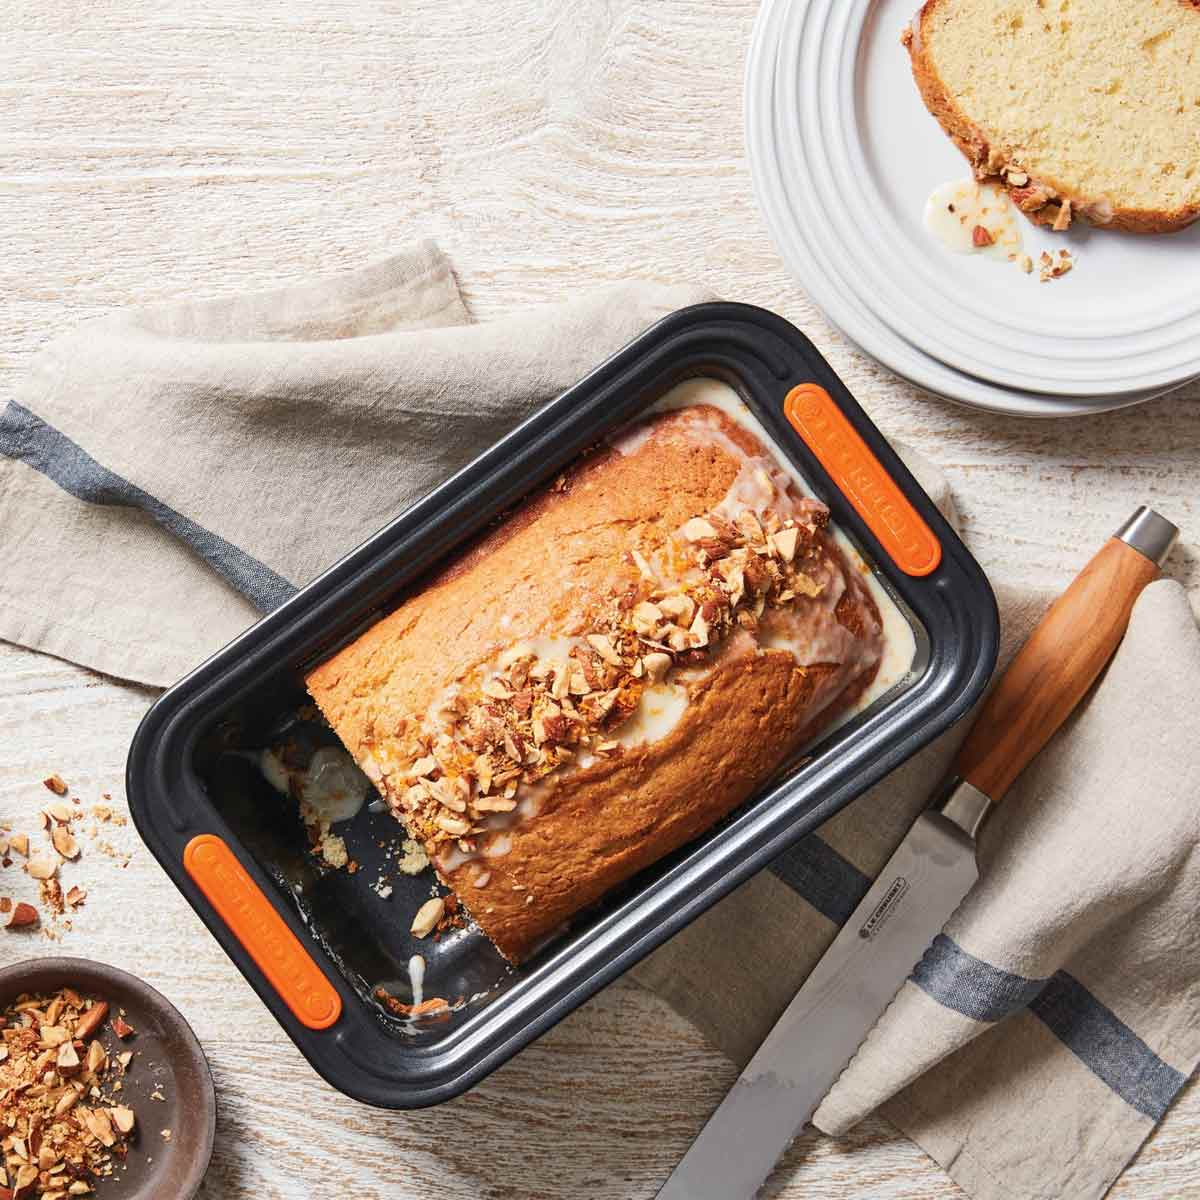 Le Creuset Loaf Pan with Bread